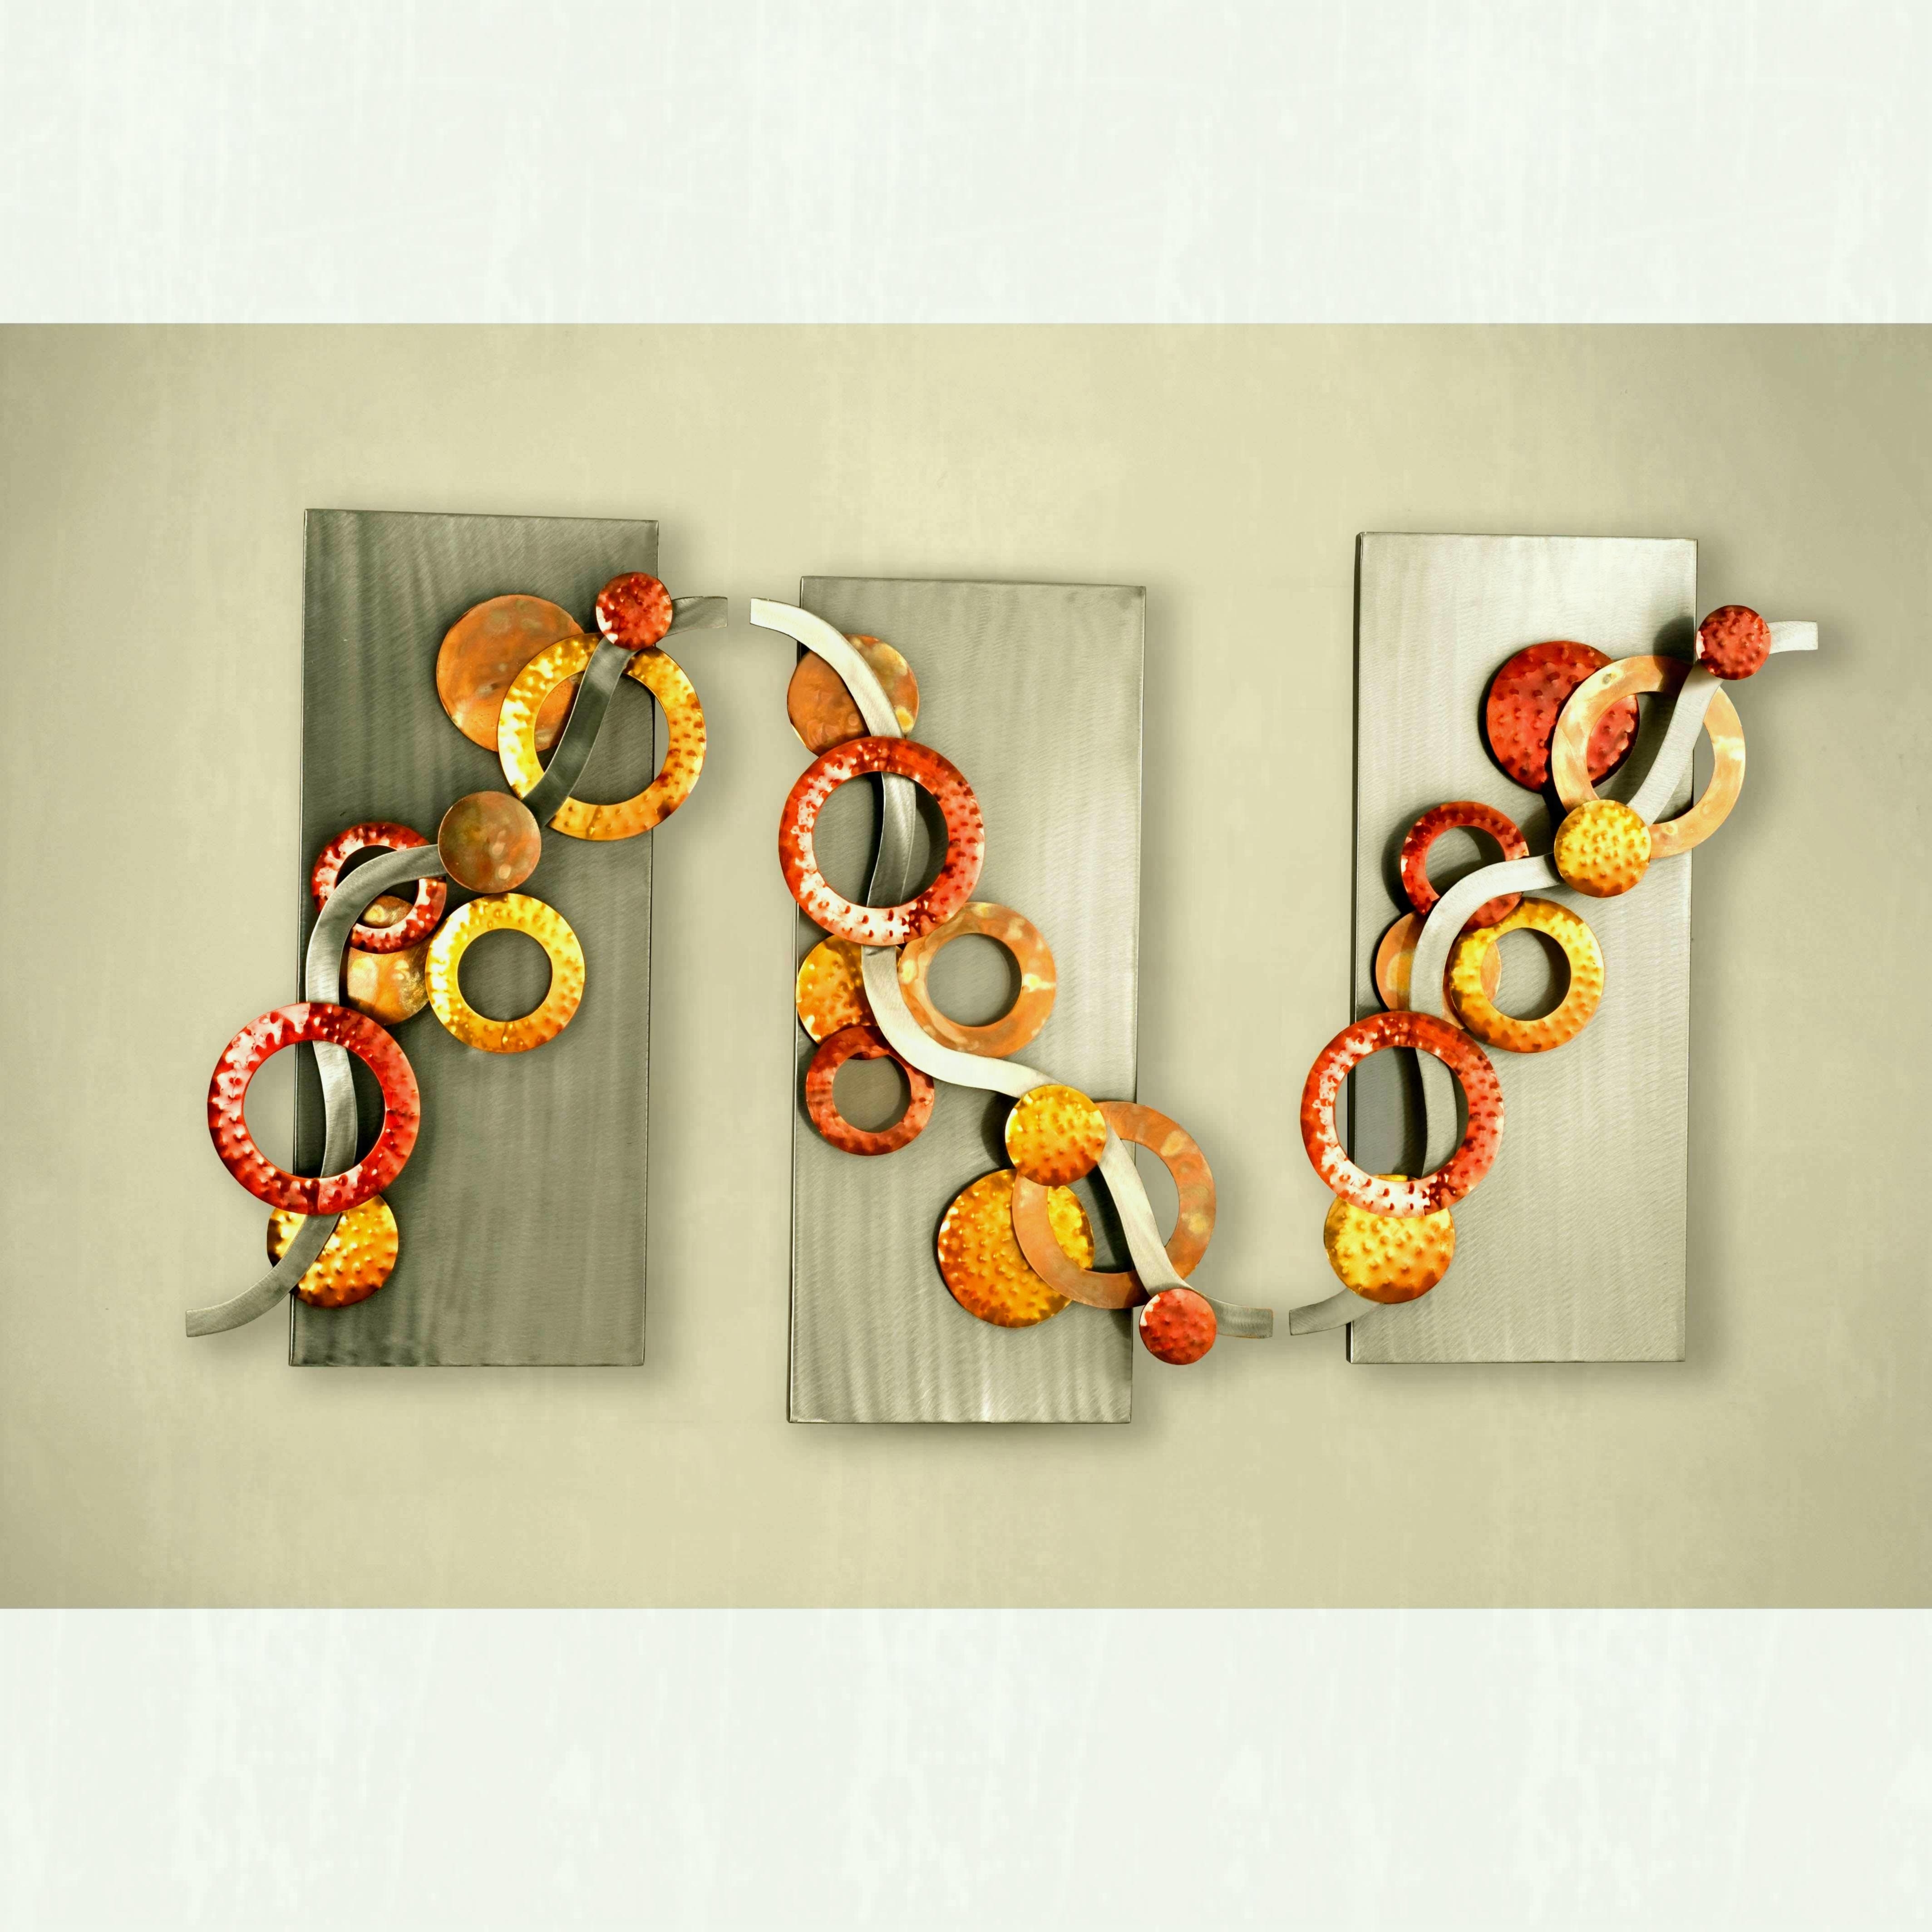 Canvas Wall Art Sets Intended For Preferred Canvas Wall Art Sets Fresh Ideas Design Circle Adorable Set Of (View 12 of 15)